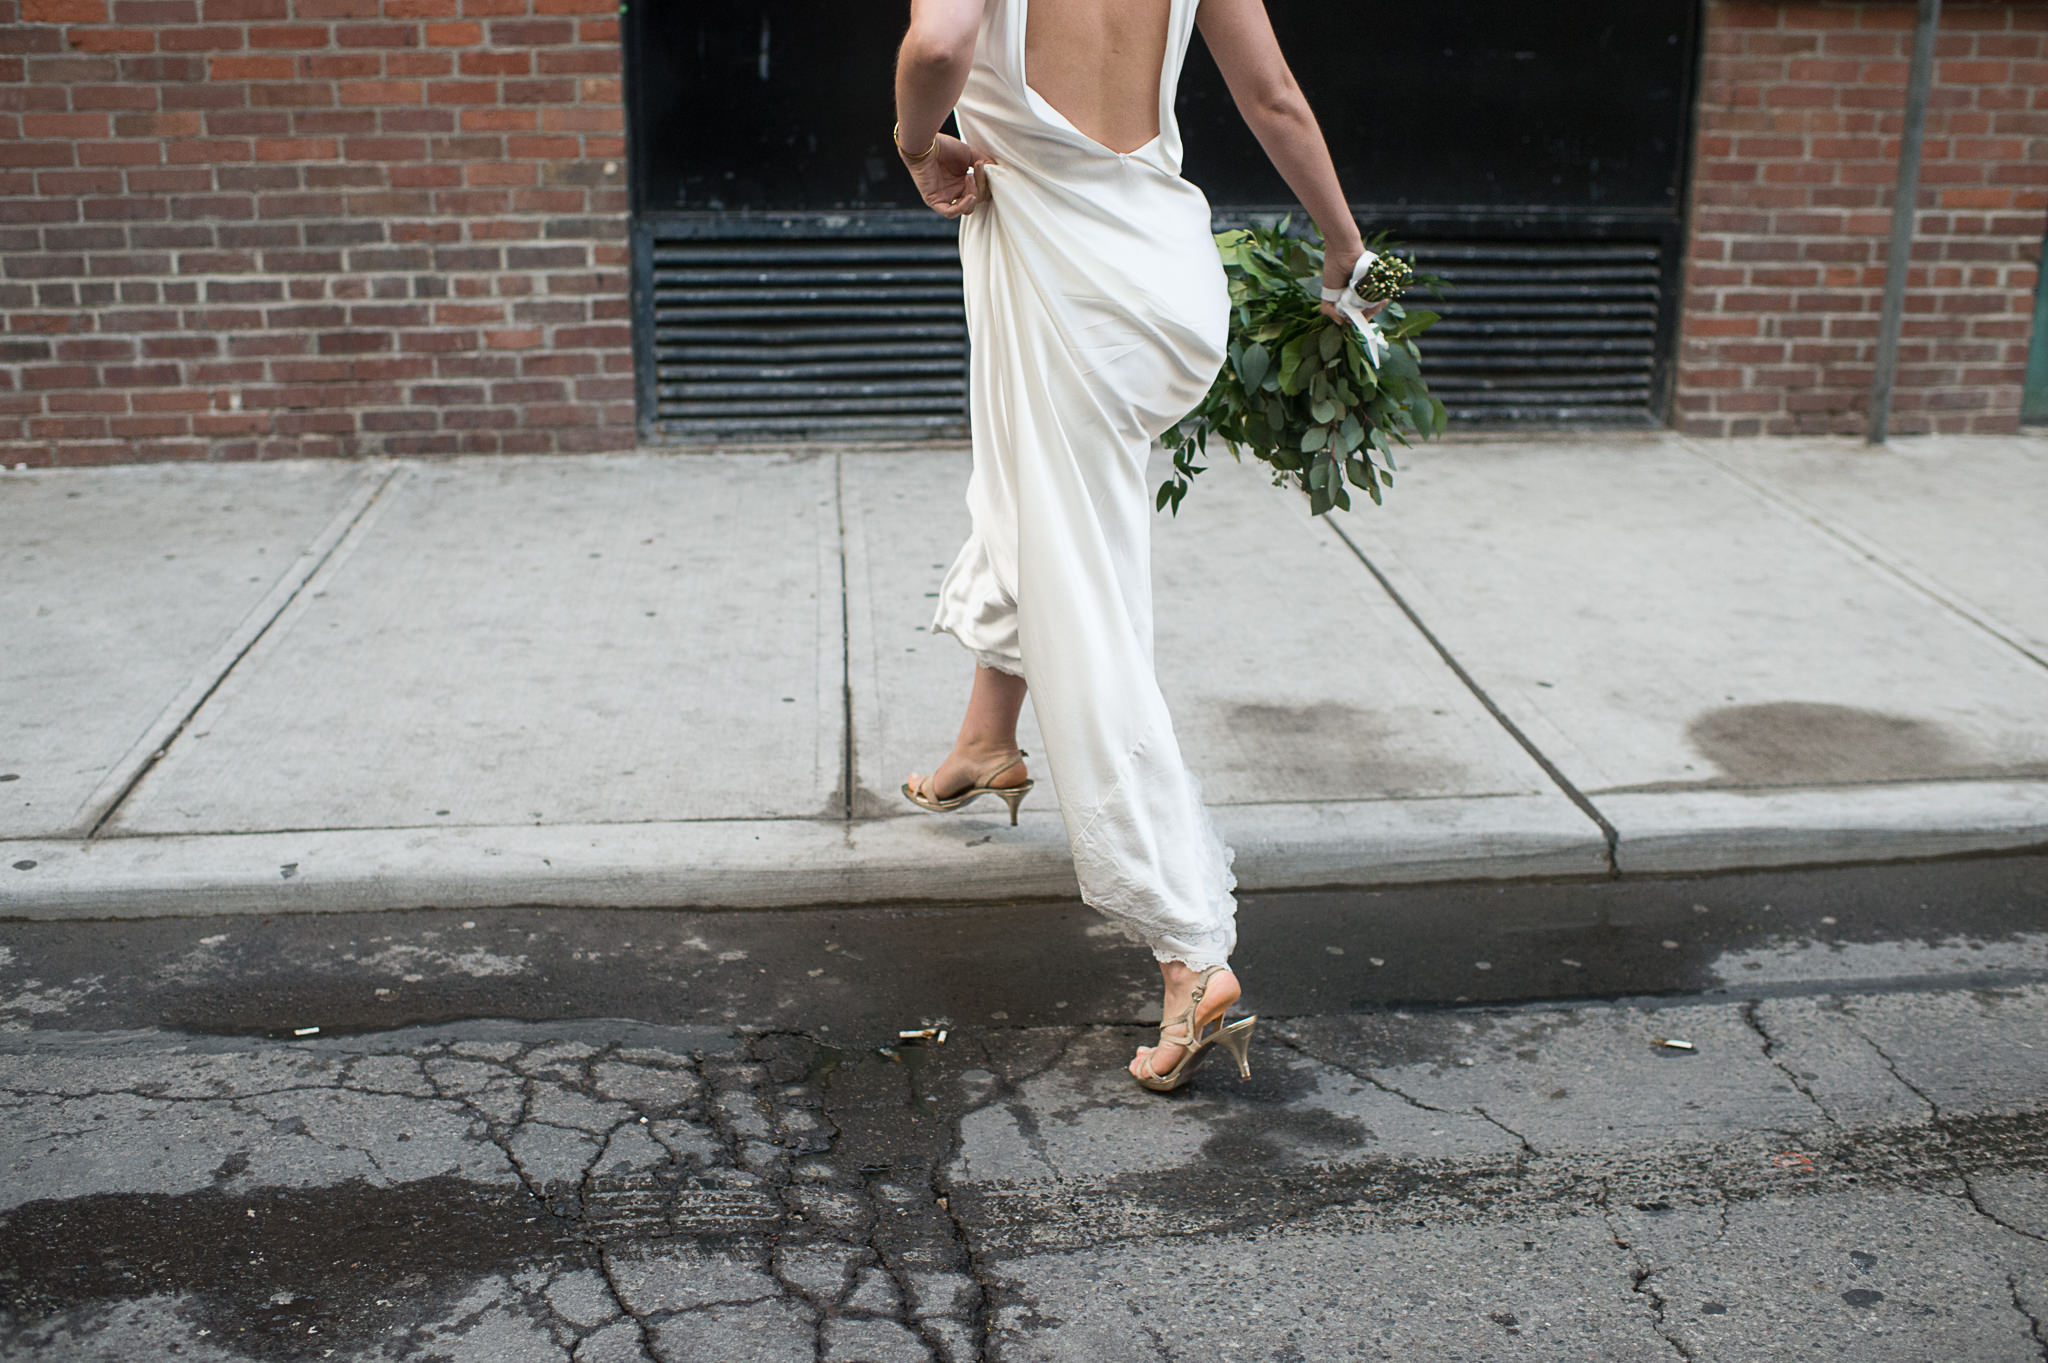 An unedited photo of a bride who makes a step from the street onto the sidewalk.